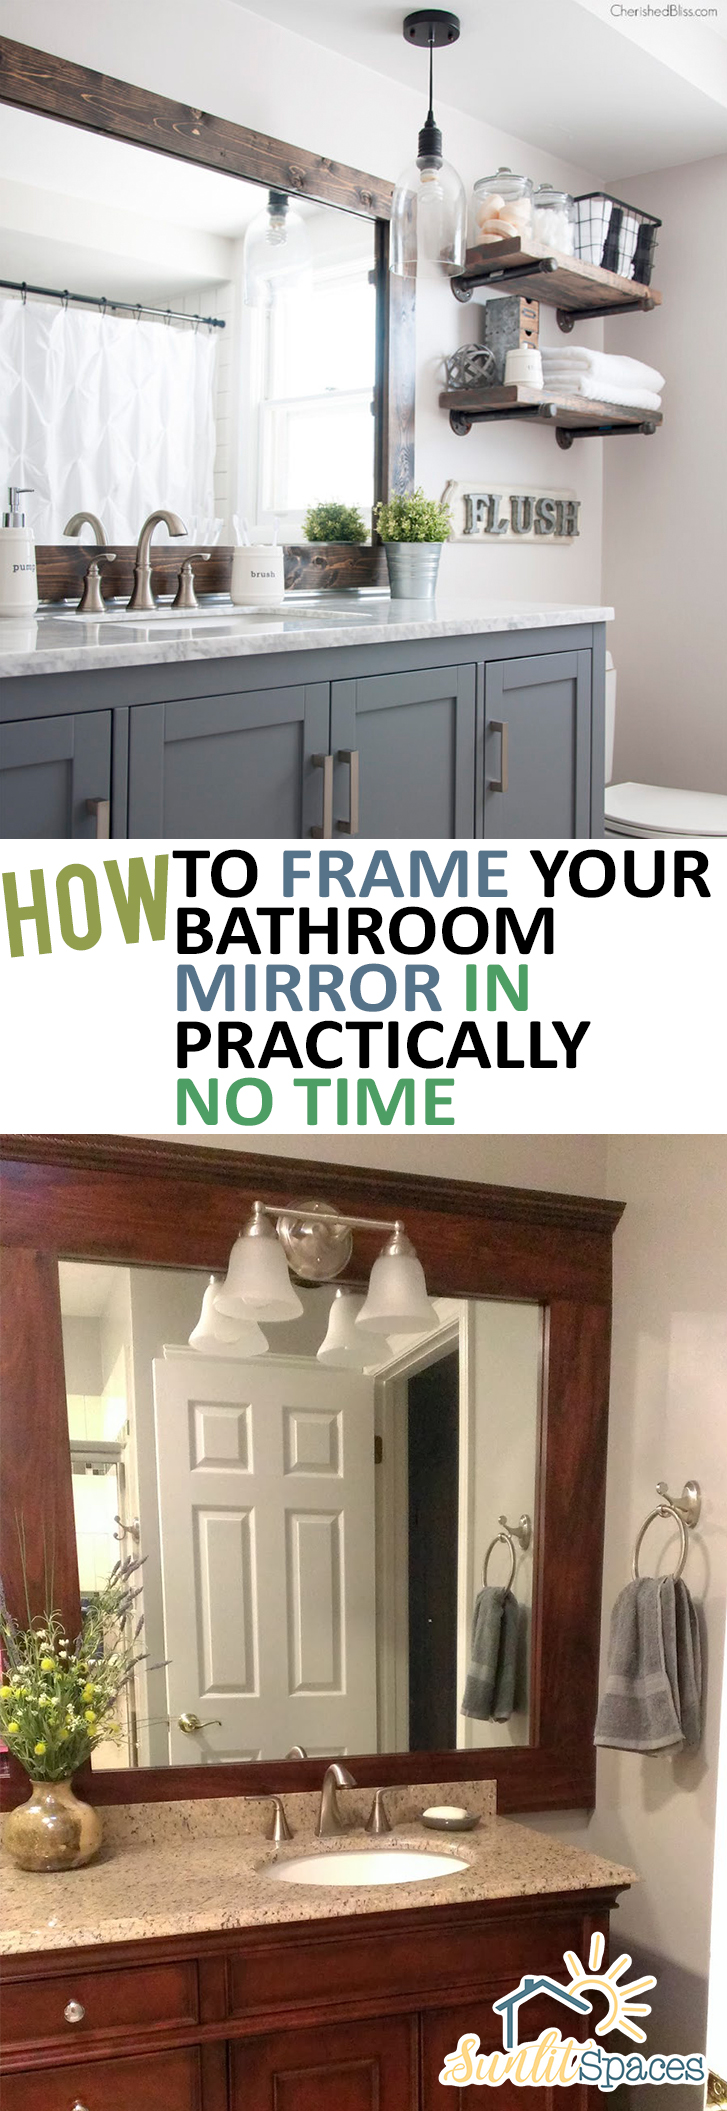 How To Frame Your Bathroom Mirror In Practically No Time| Frame Your  Bathroom Mirror,